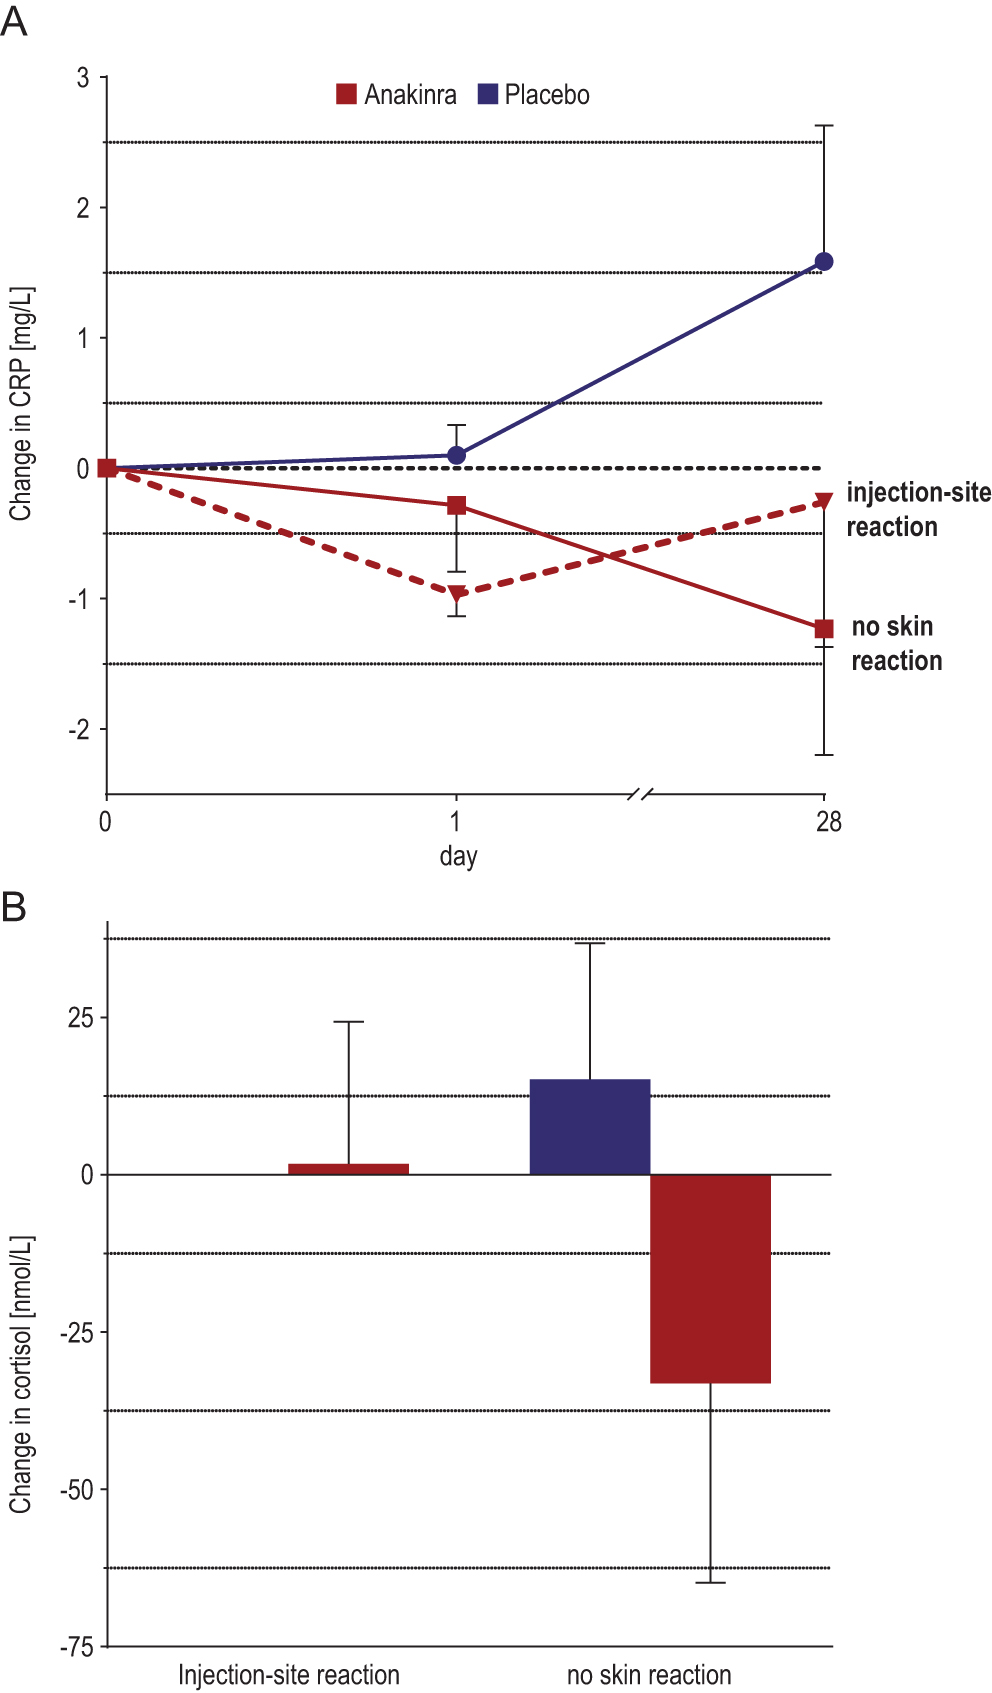 Effects of interleukin-1 antagonism on cortisol levels in